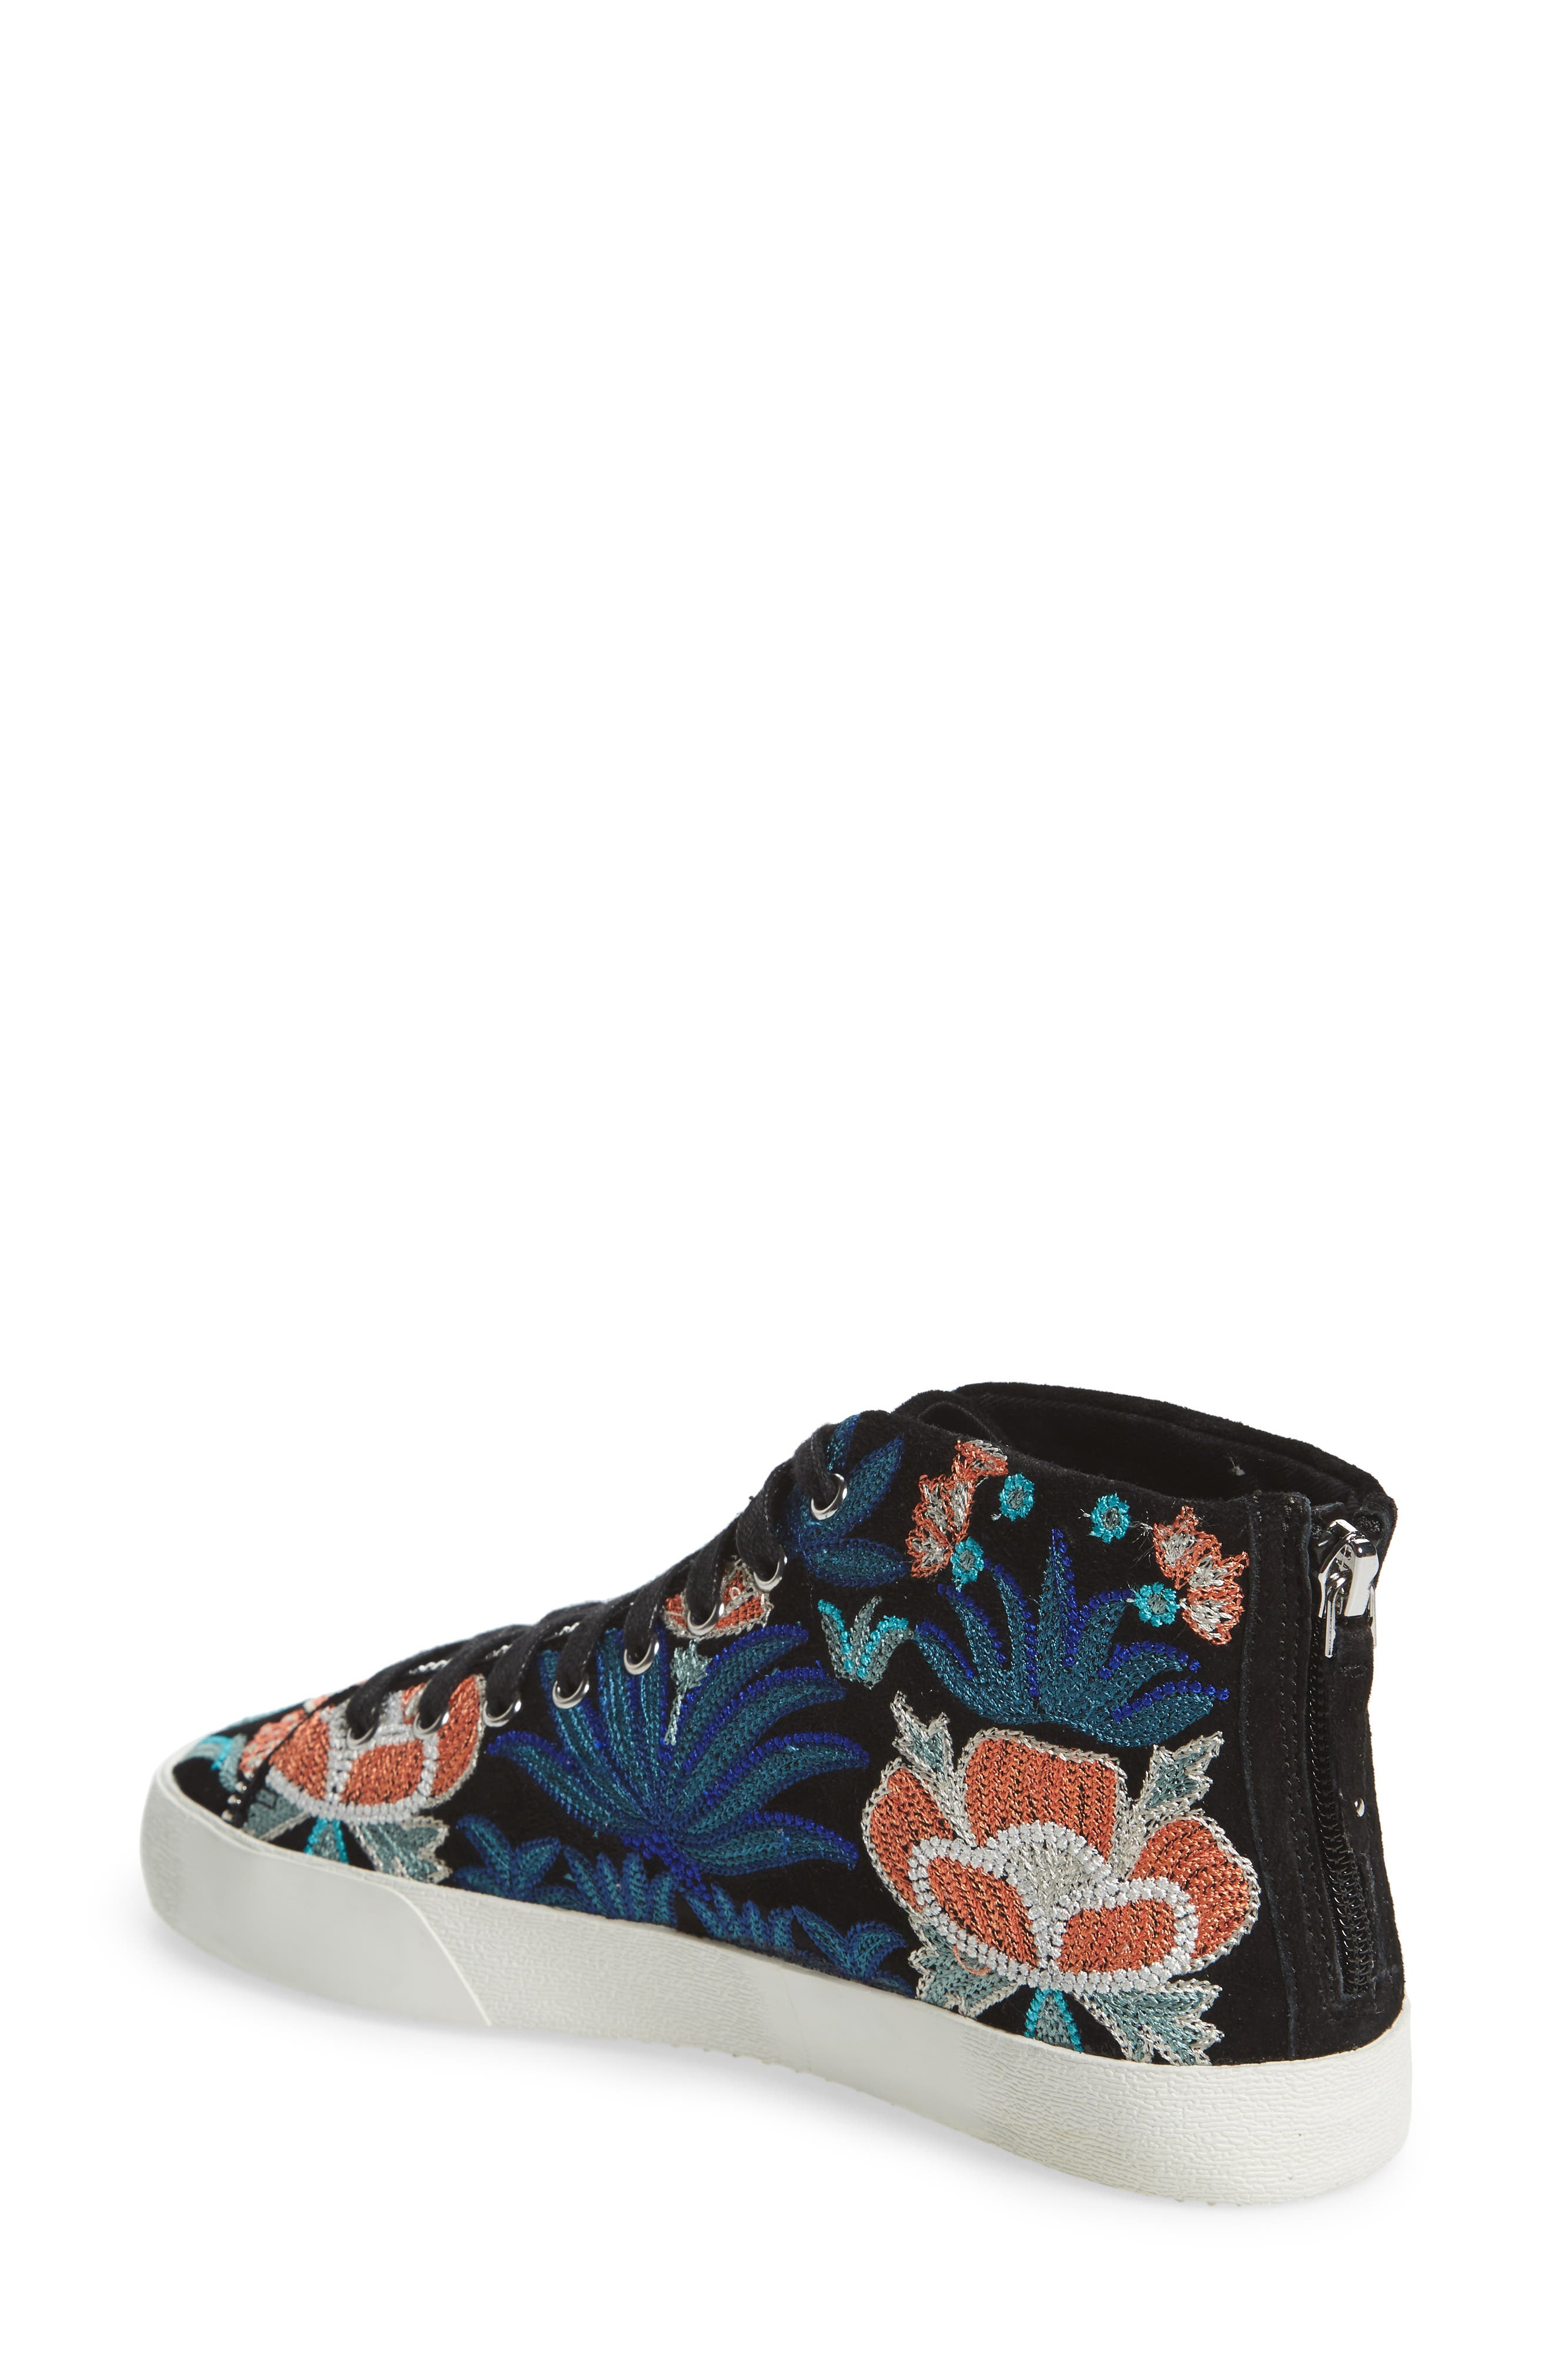 Zaina Embroidered Sneaker,                             Alternate thumbnail 2, color,                             004